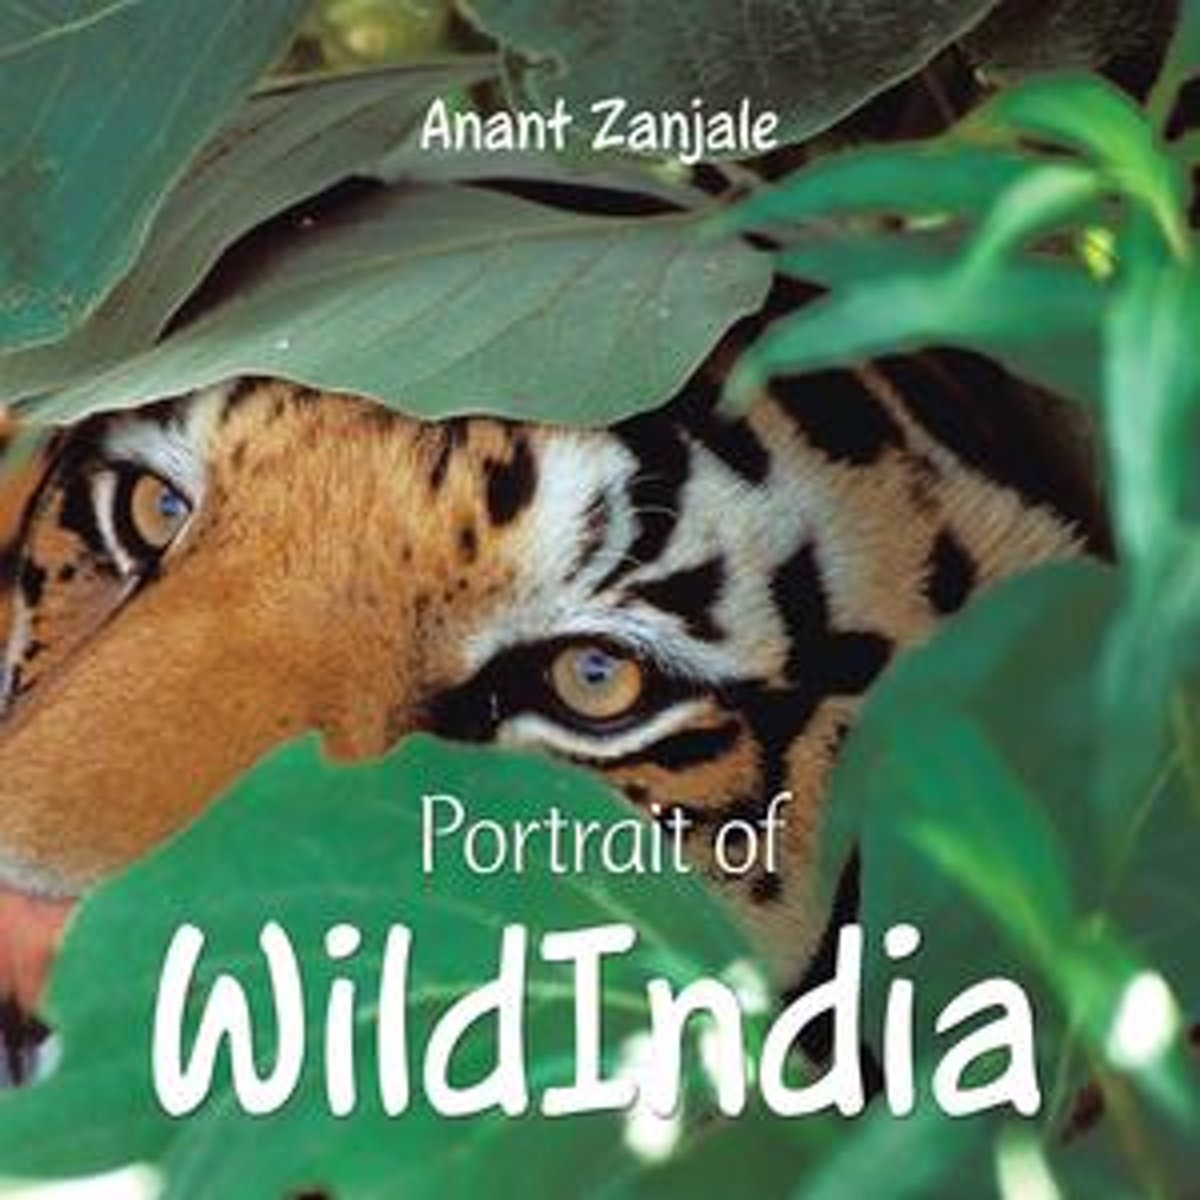 Portrait of Wildindia